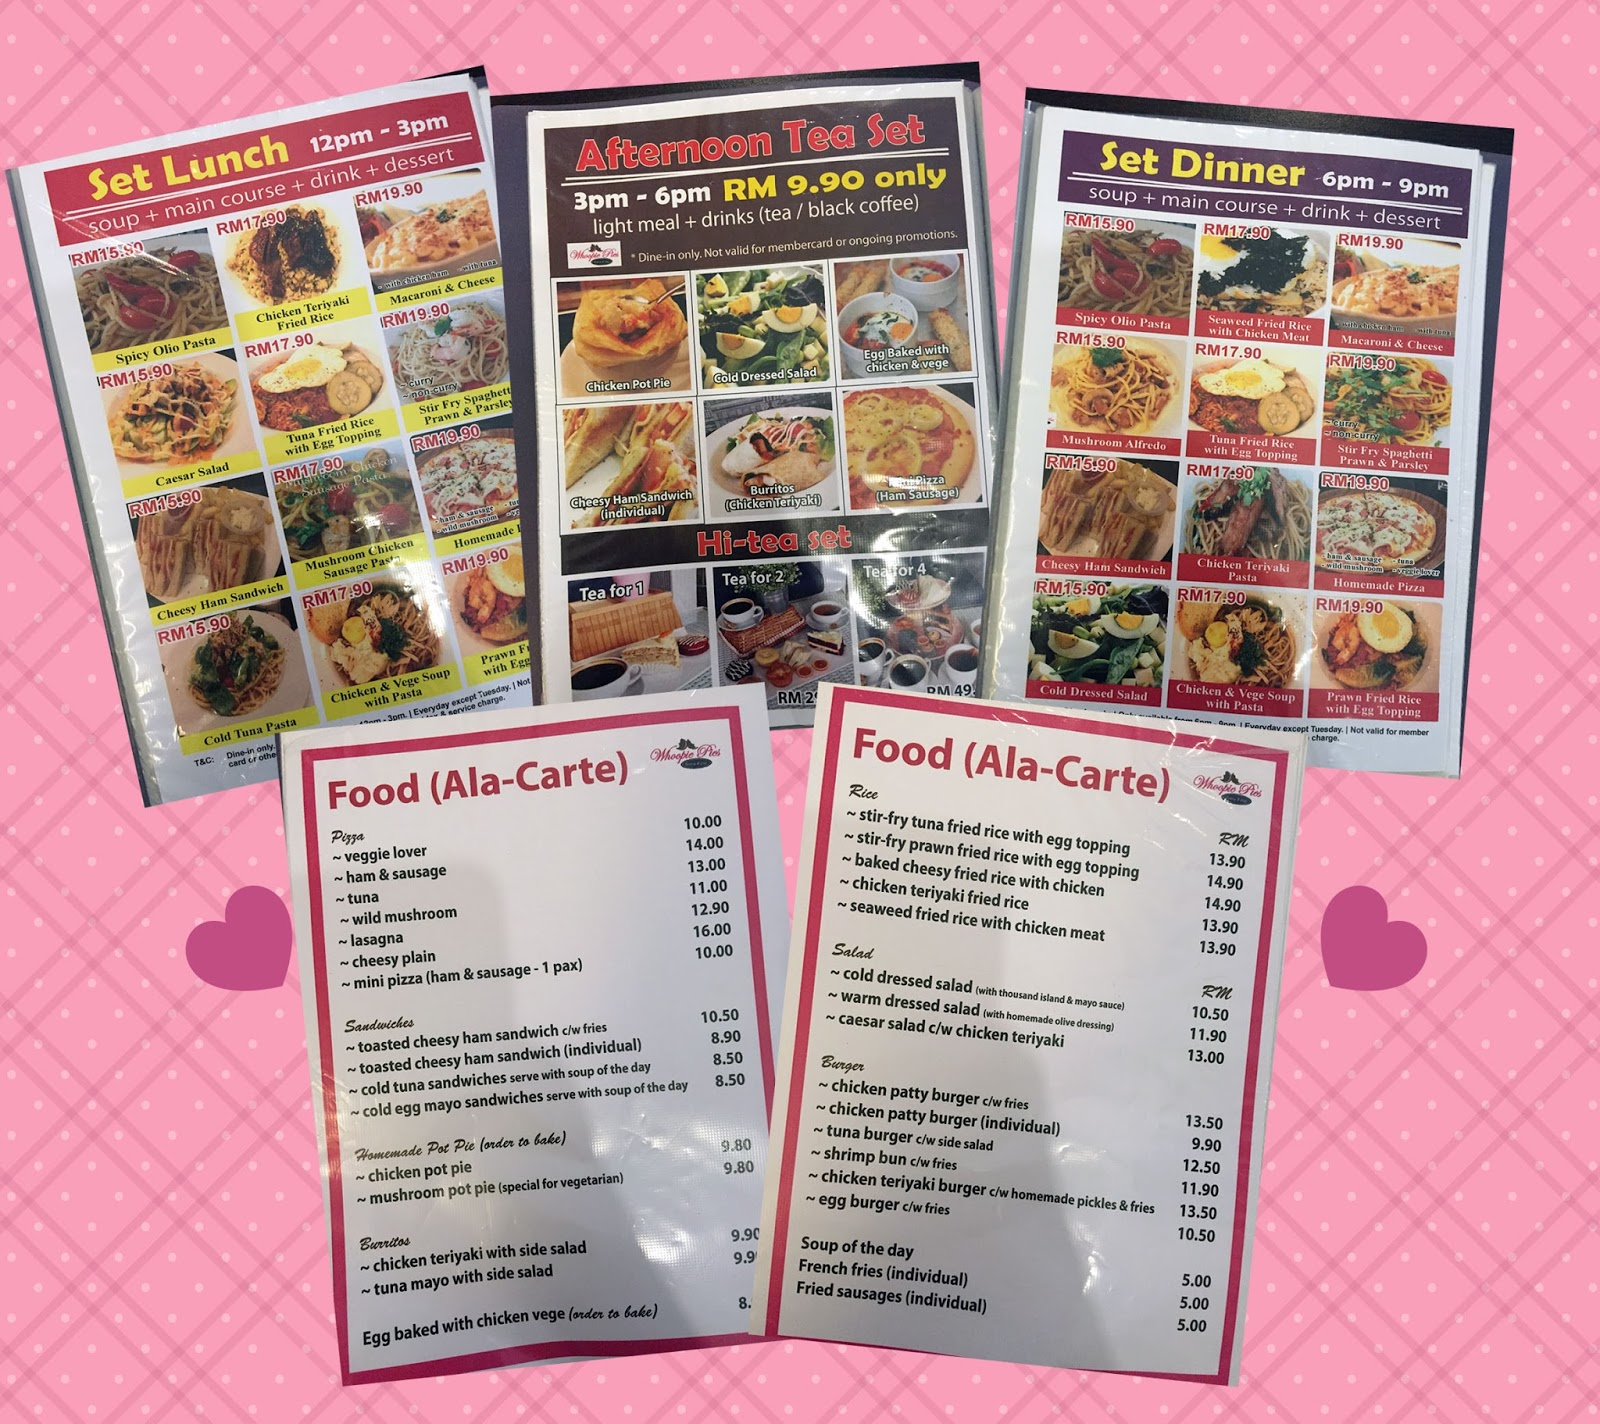 Angie S Cafe And Bakery Menu